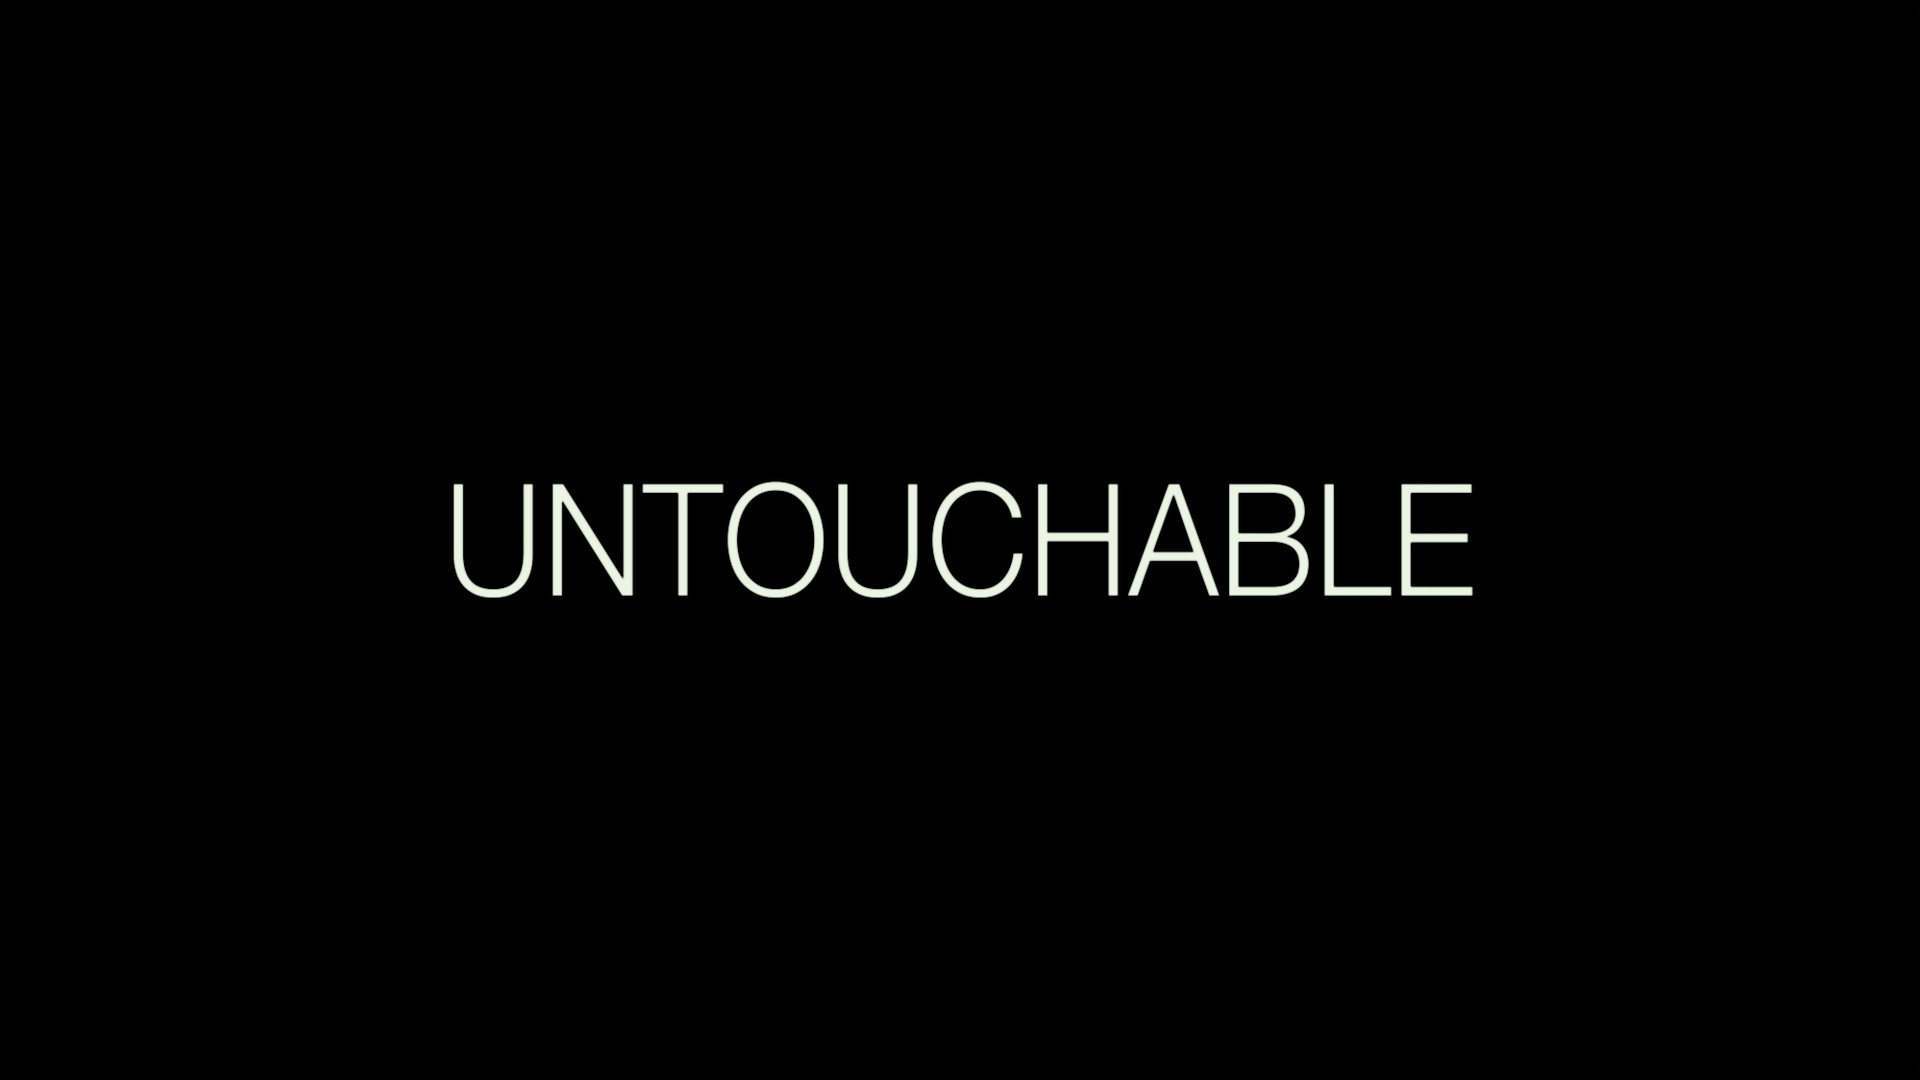 who are the untouchables andrea at west